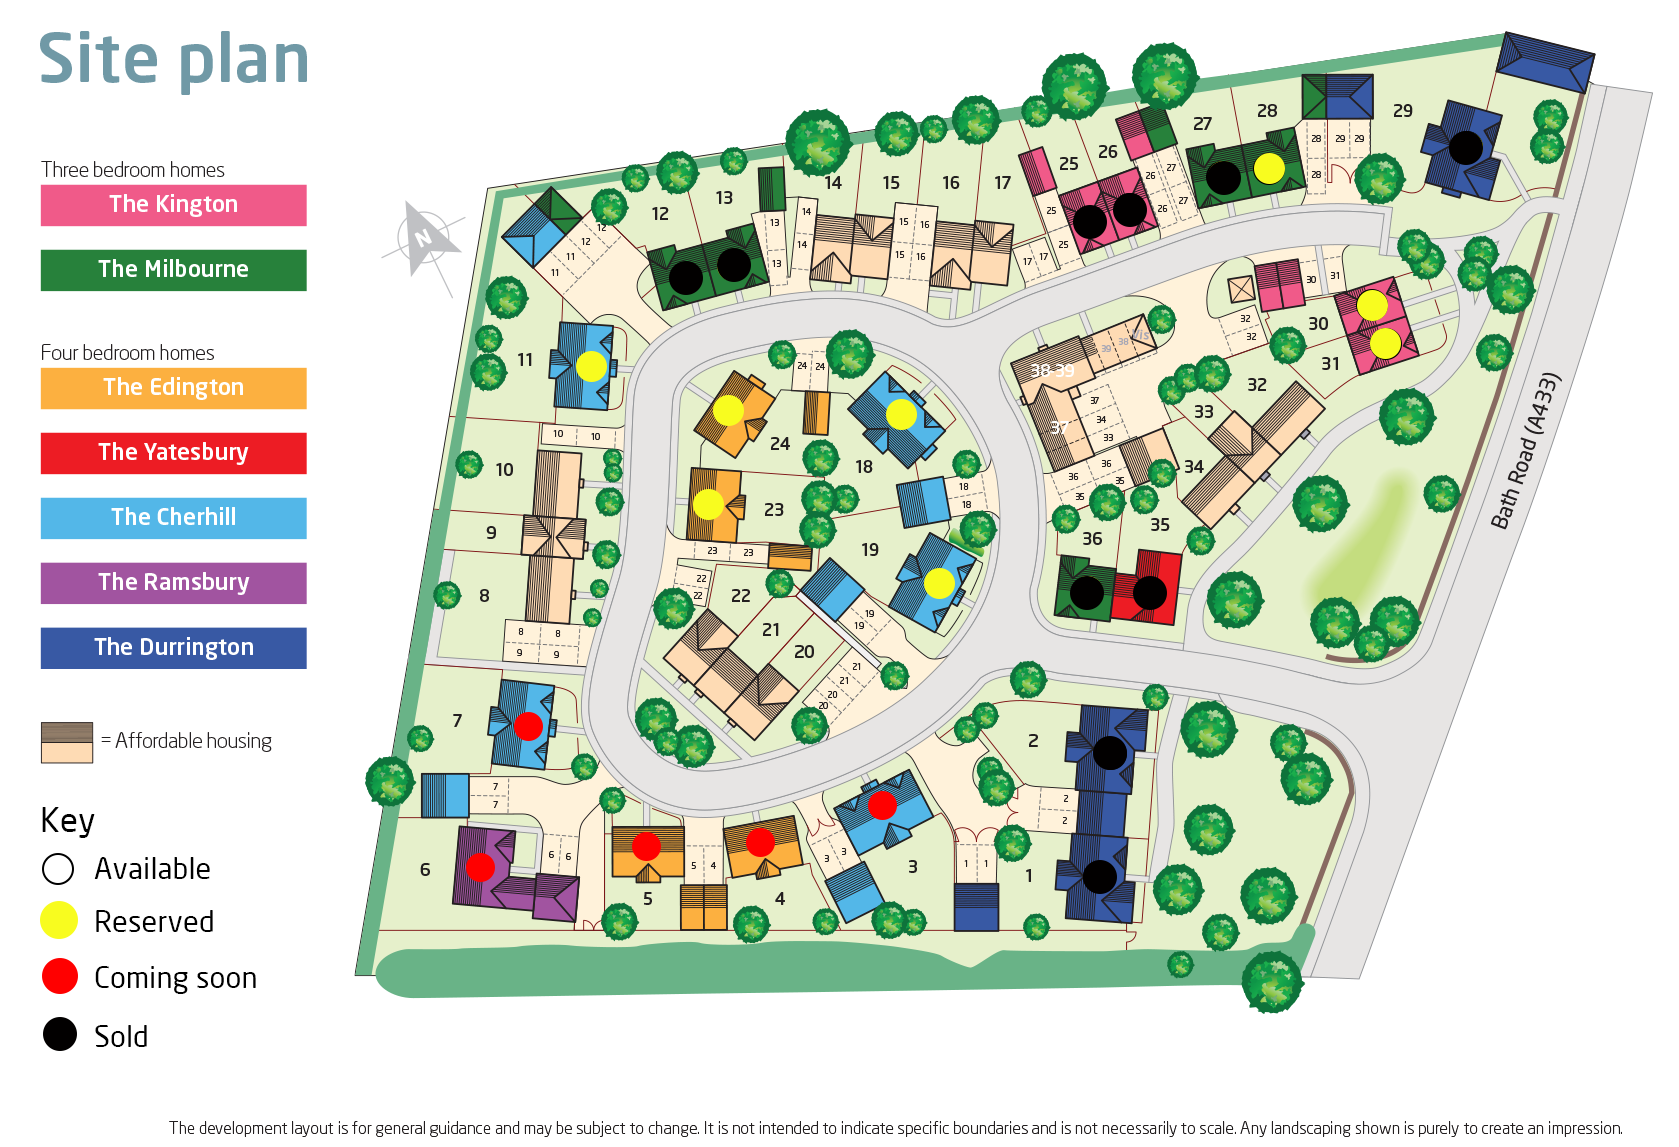 Whitelands site layout